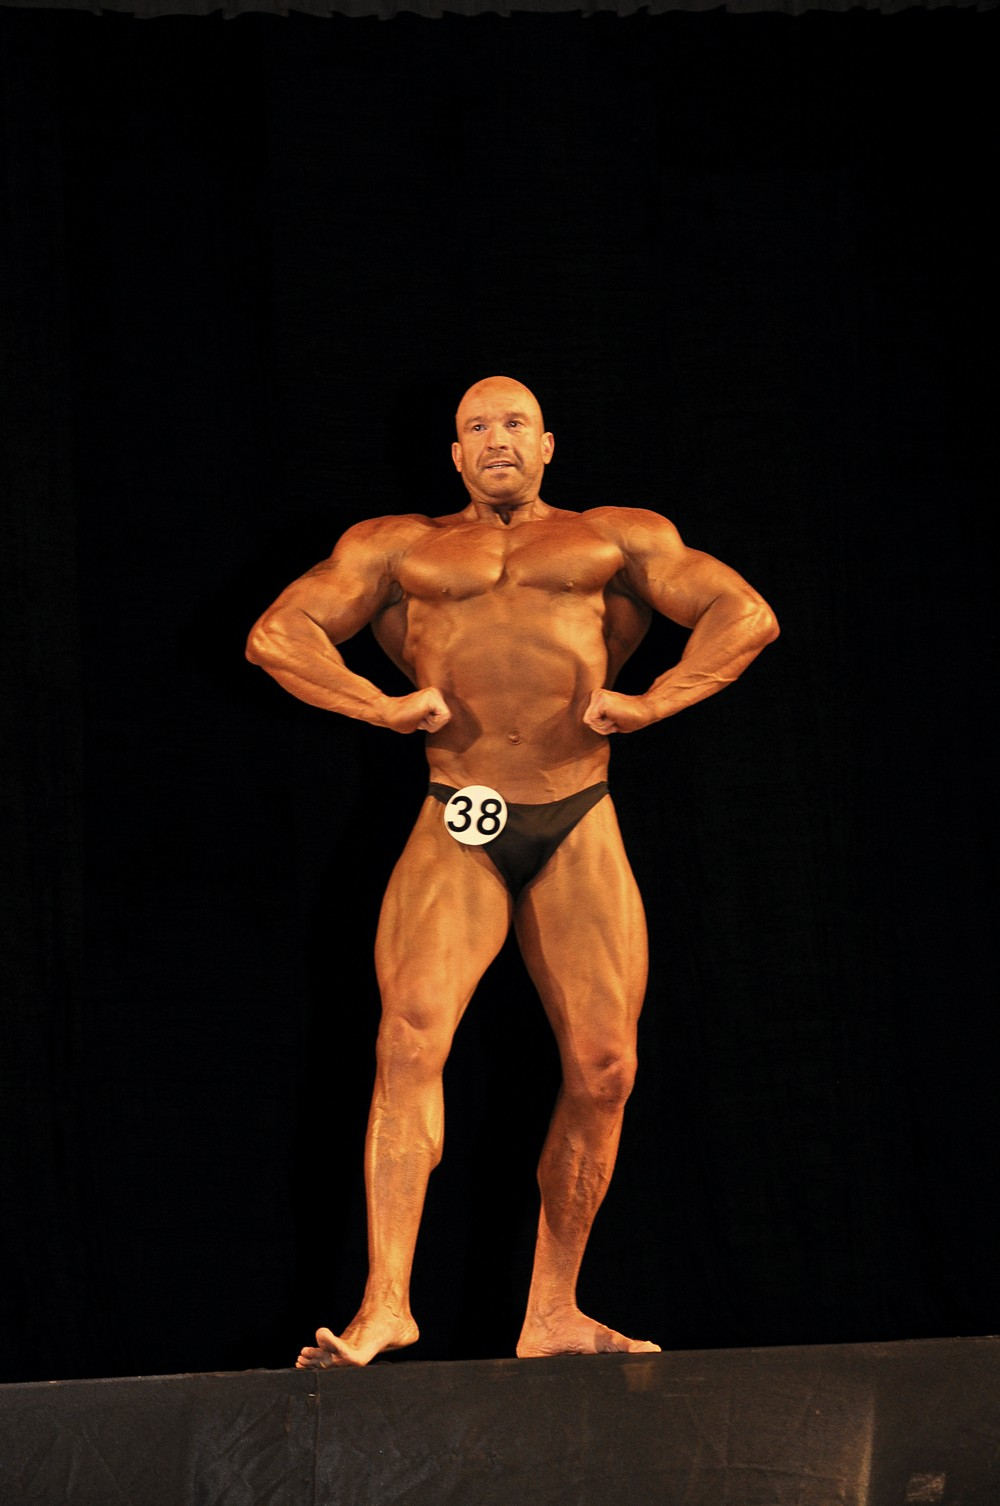 Photo & video | BODYBUILDING AND FITNESS FEDERATION OF